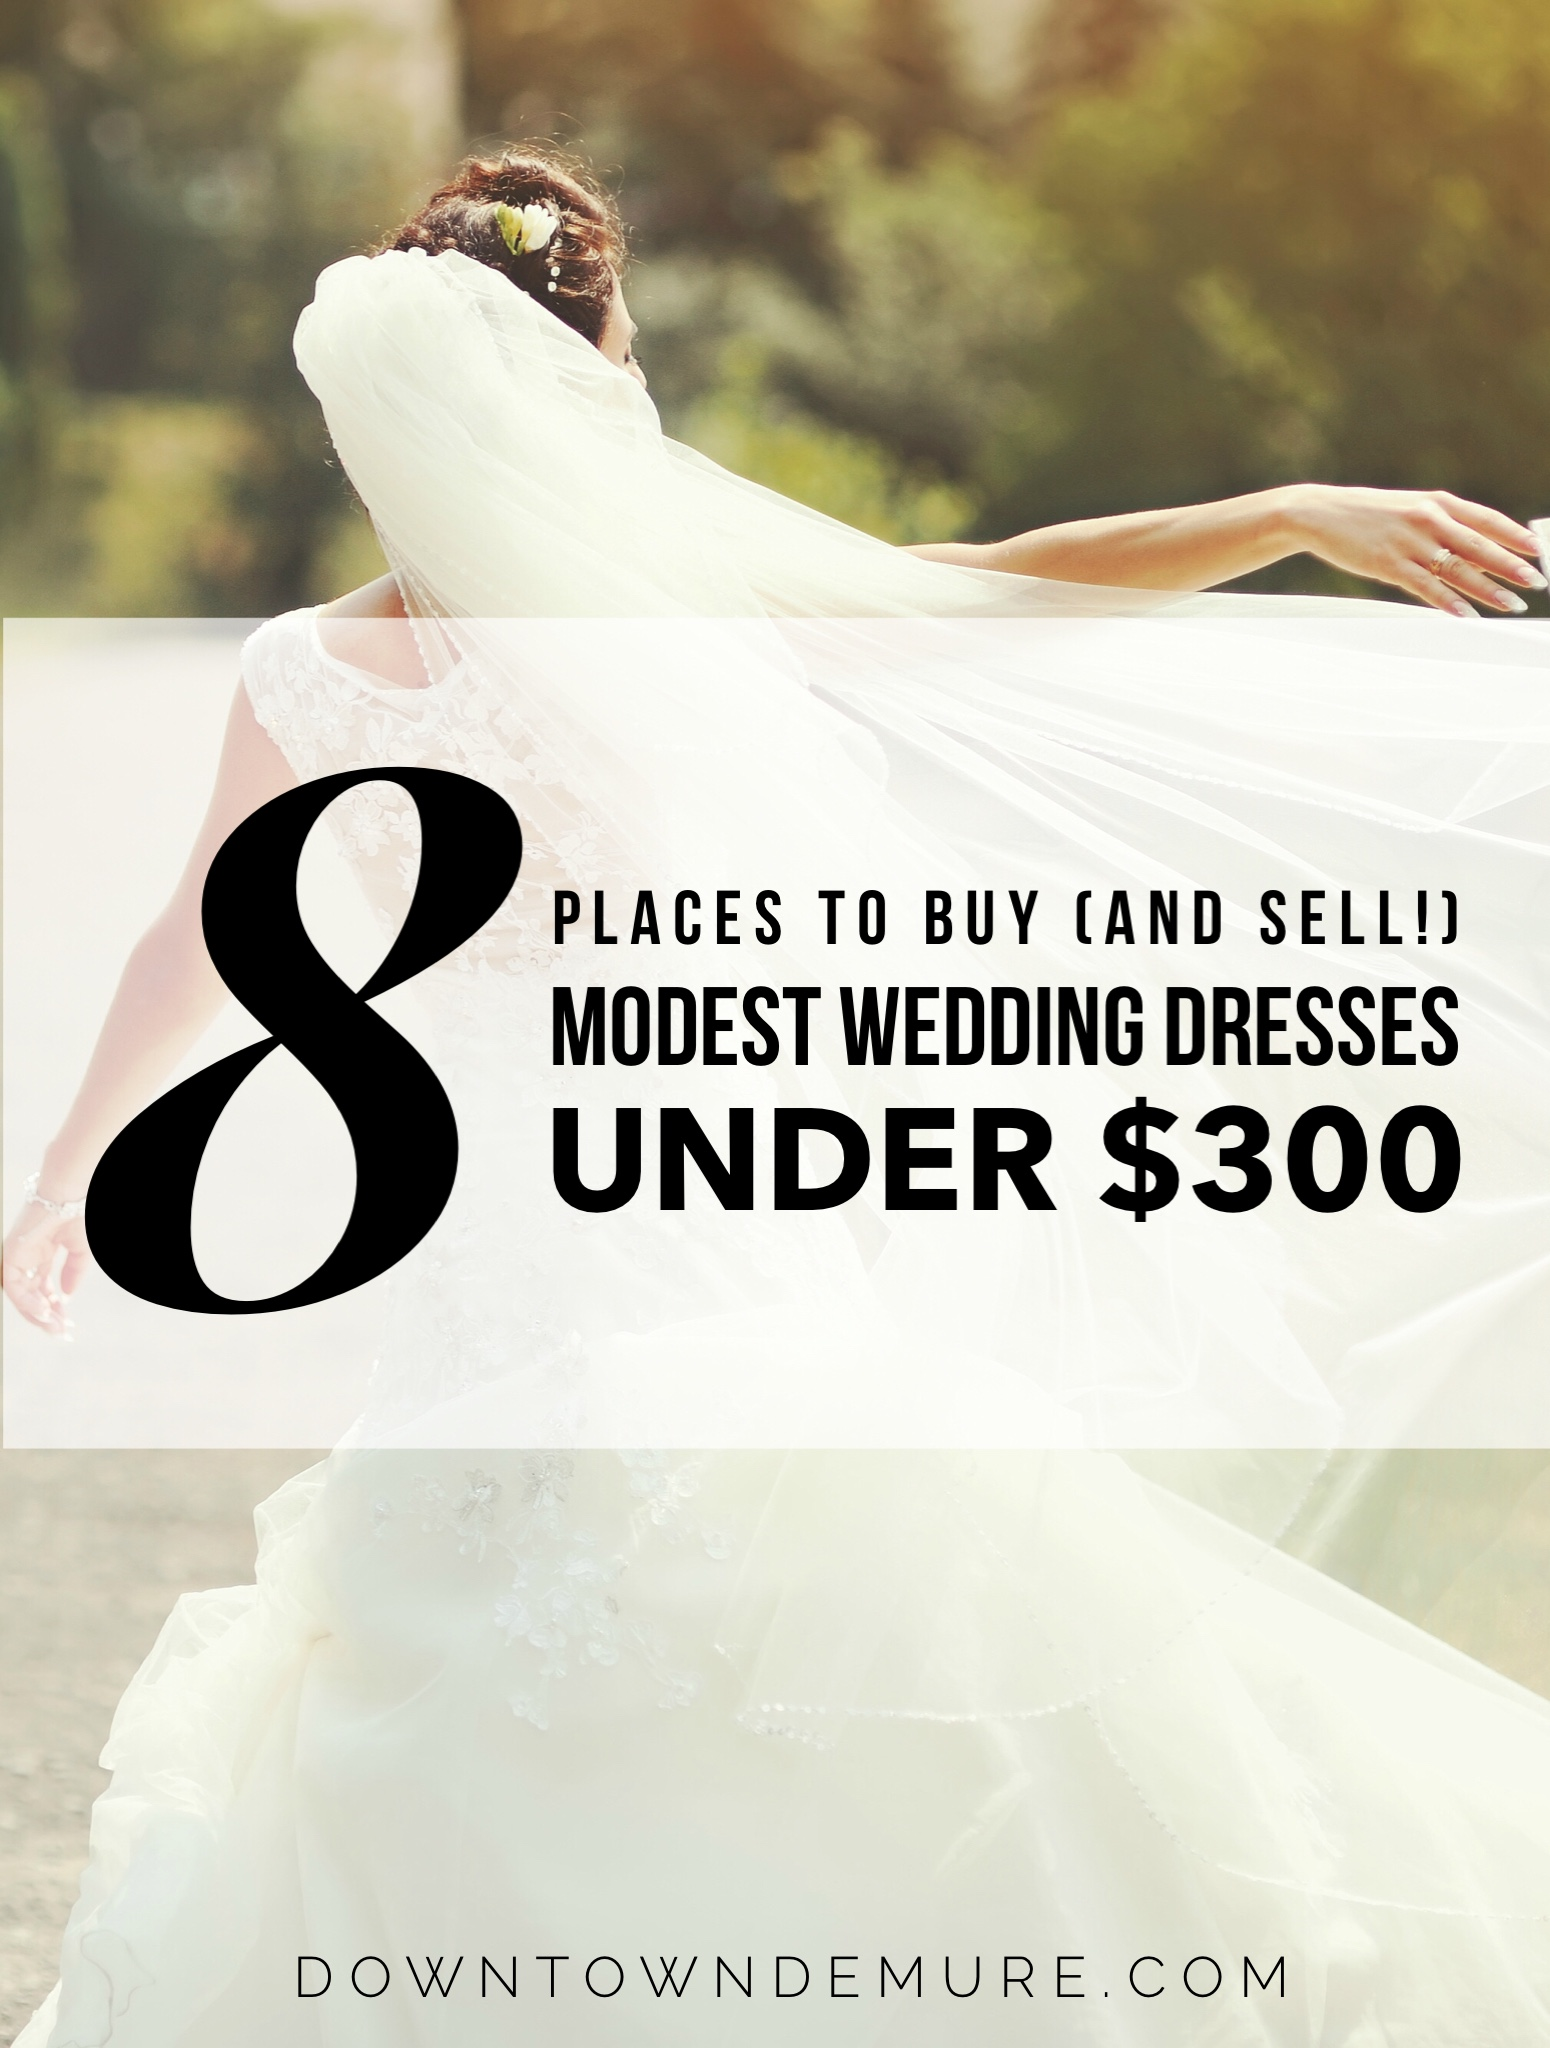 8 Places To Buy (and Sell!) Modest Wedding Dresses Under $300 ...